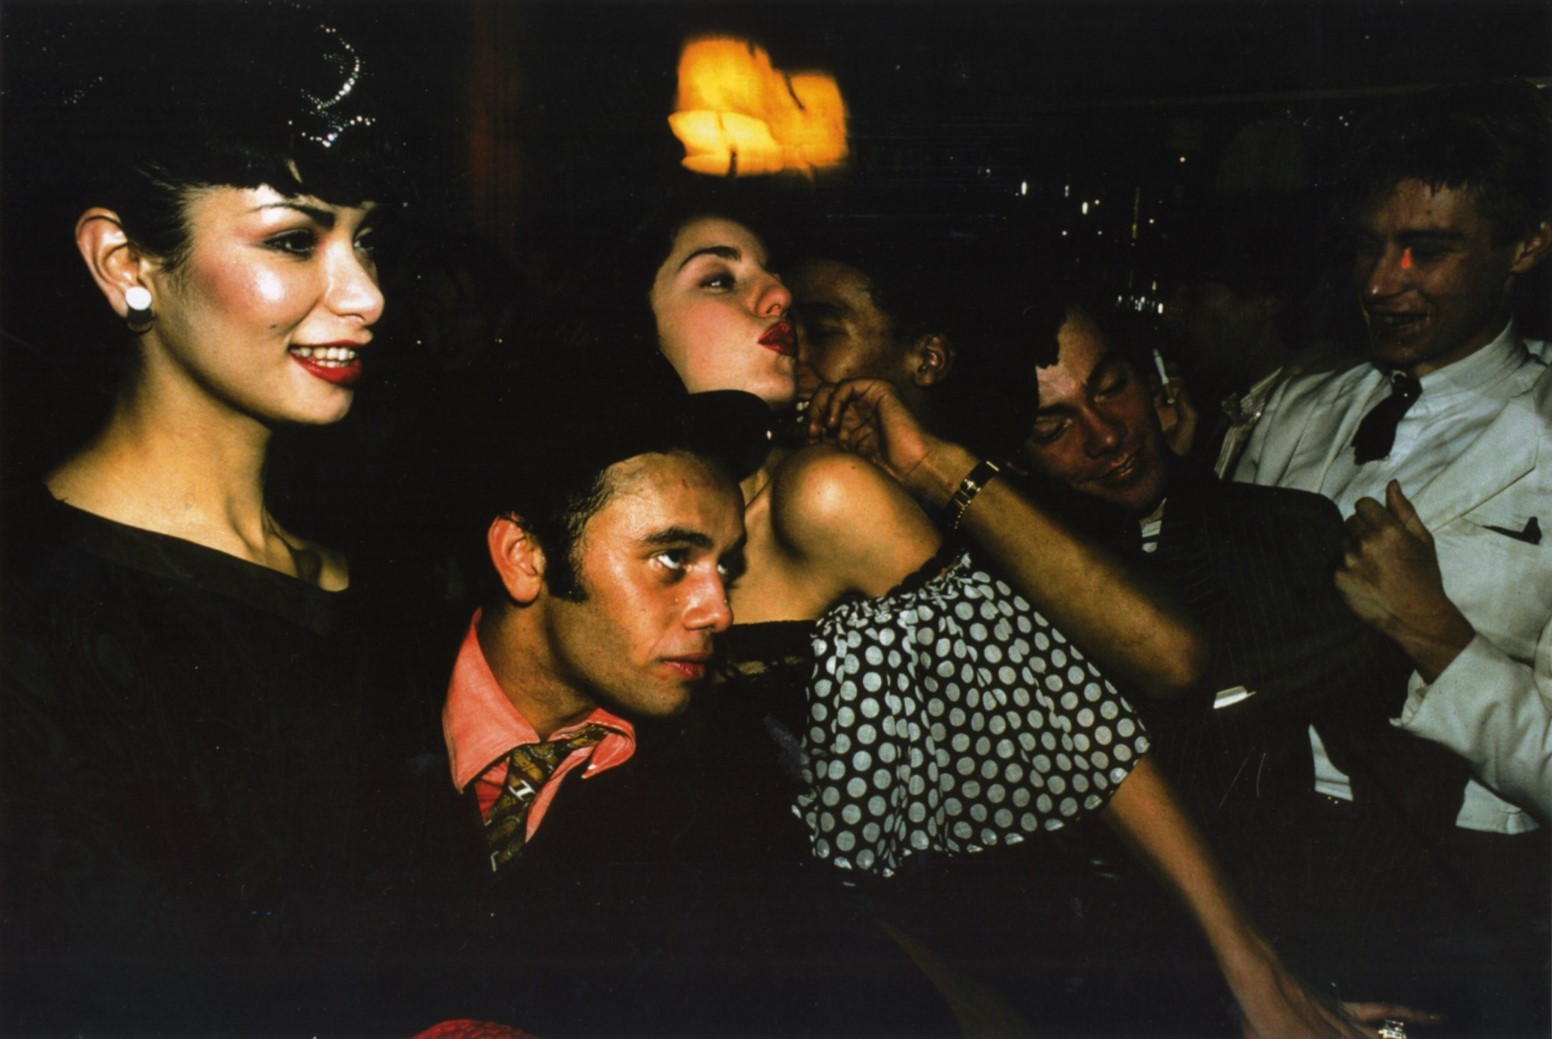 palace paris 80s photography william klein v magazine march april 2003